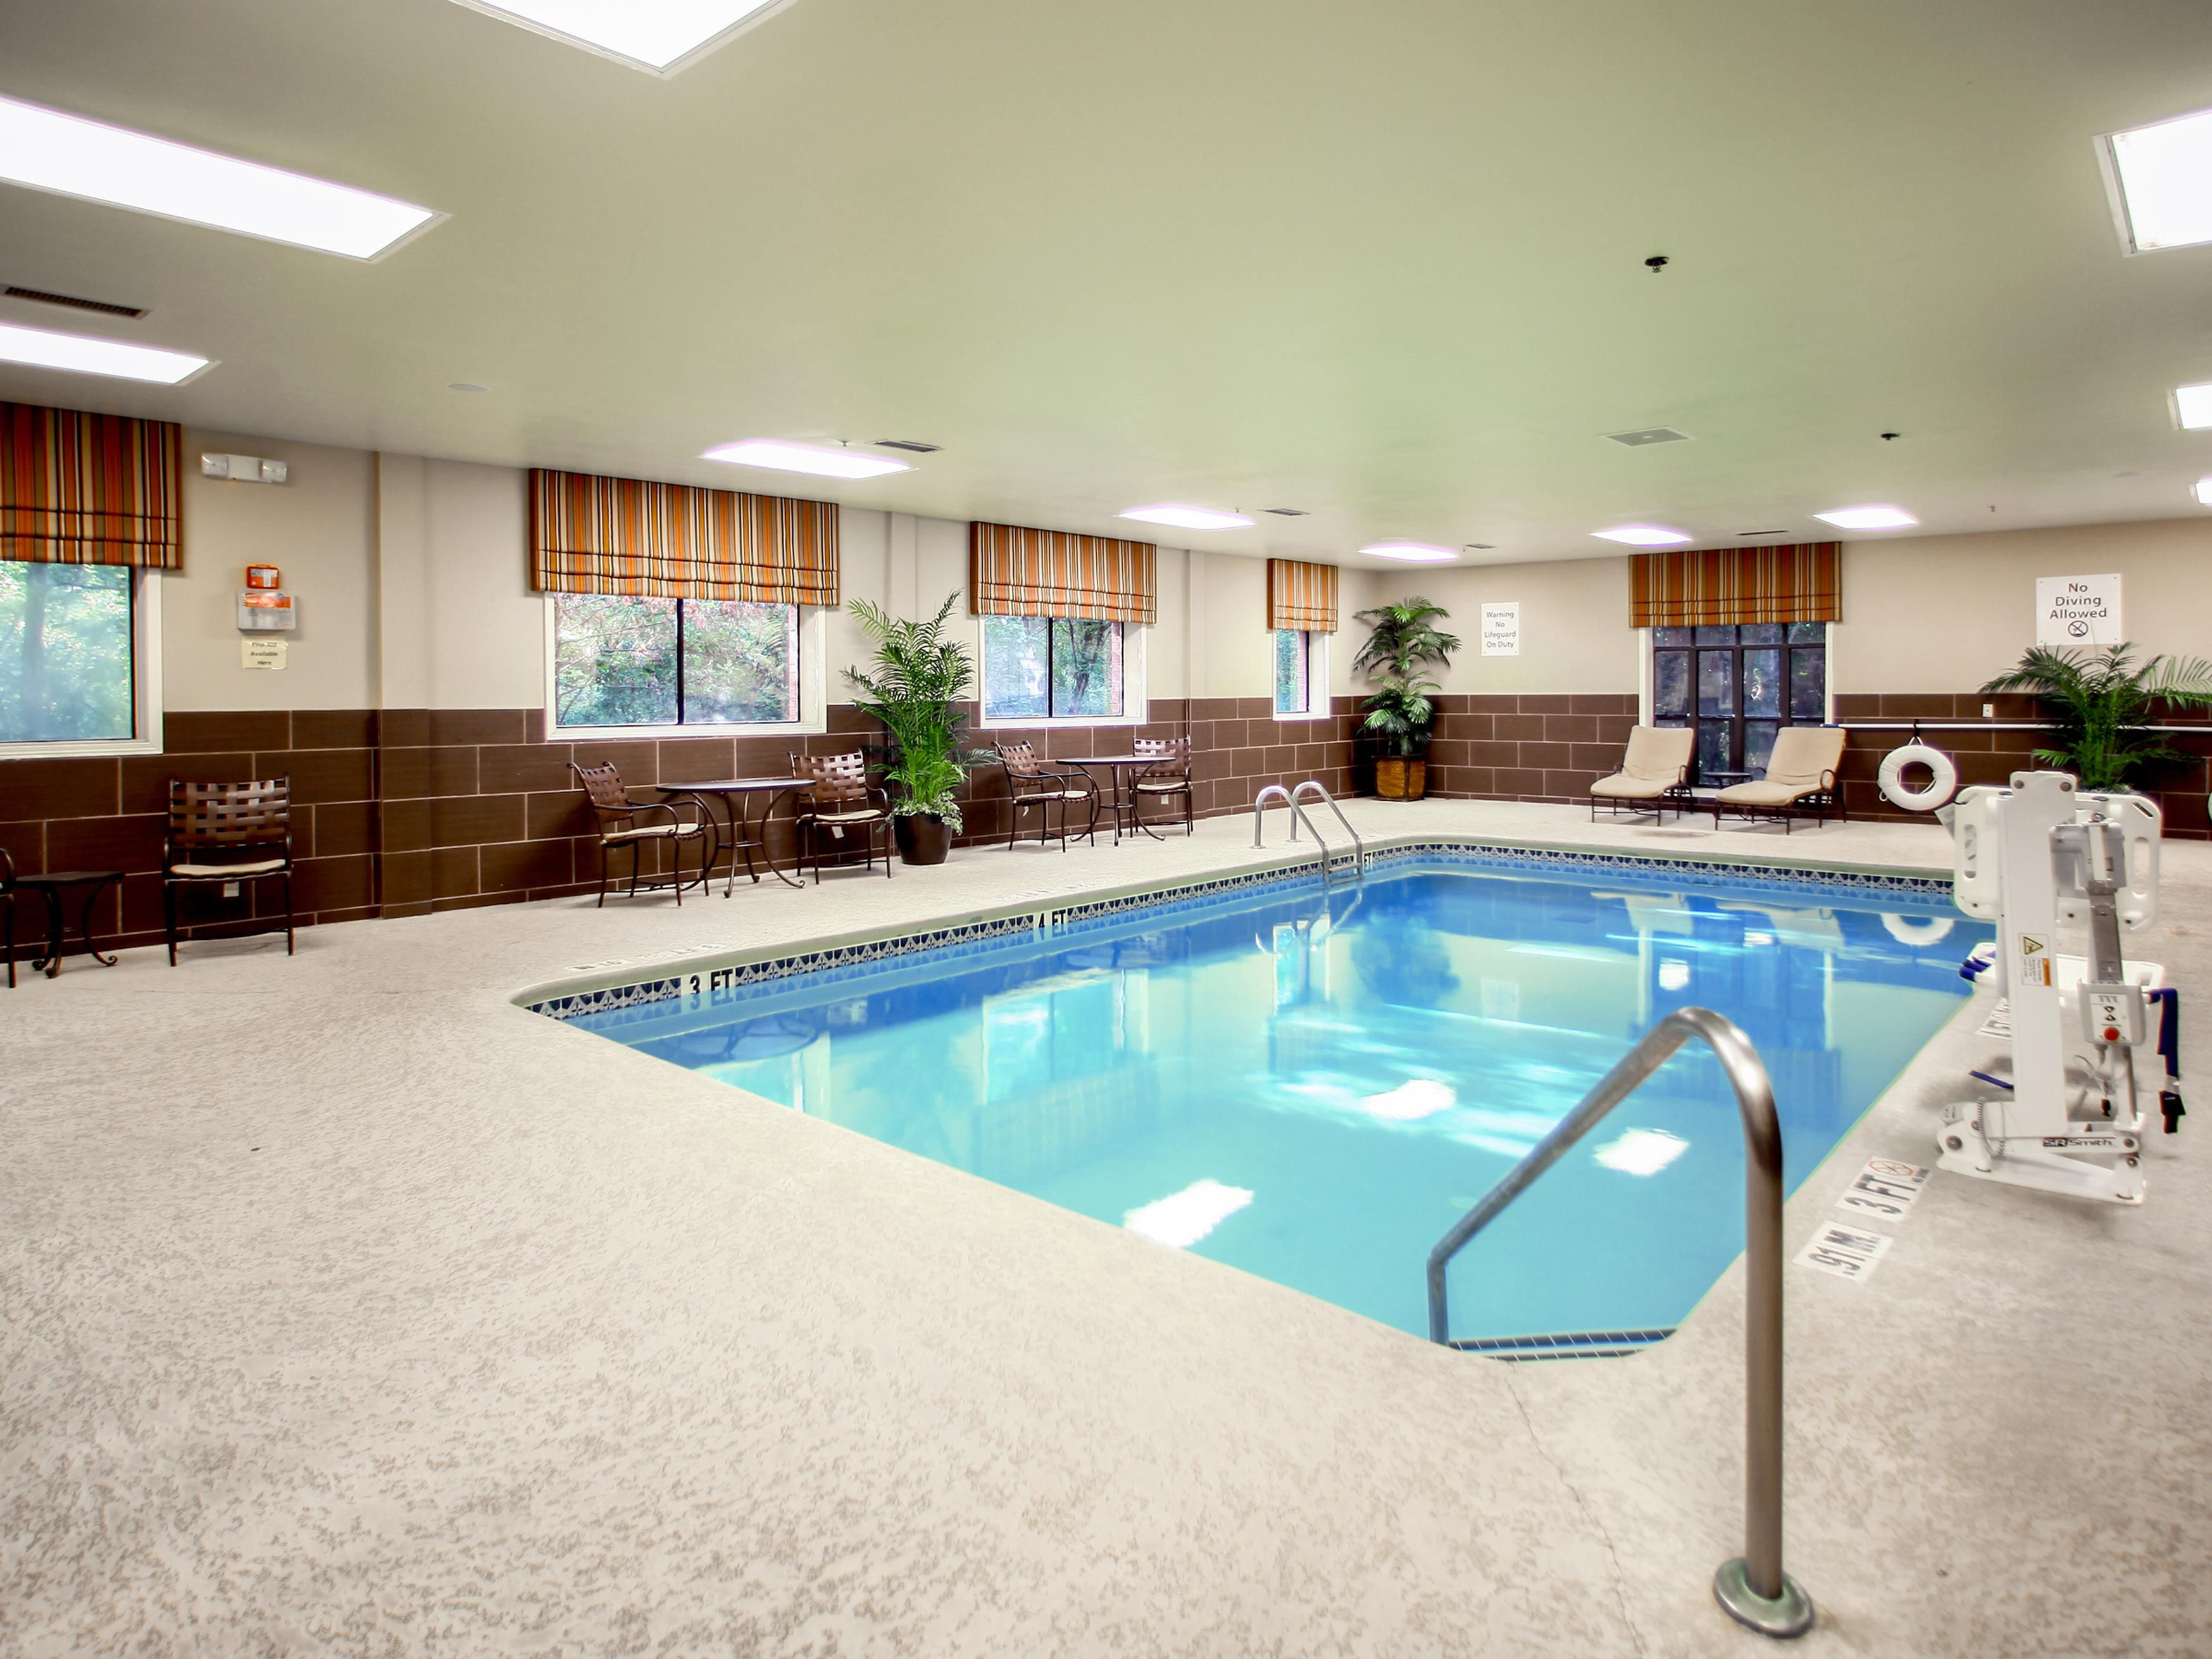 Take a cool dip and relax in our indoor swimming pool